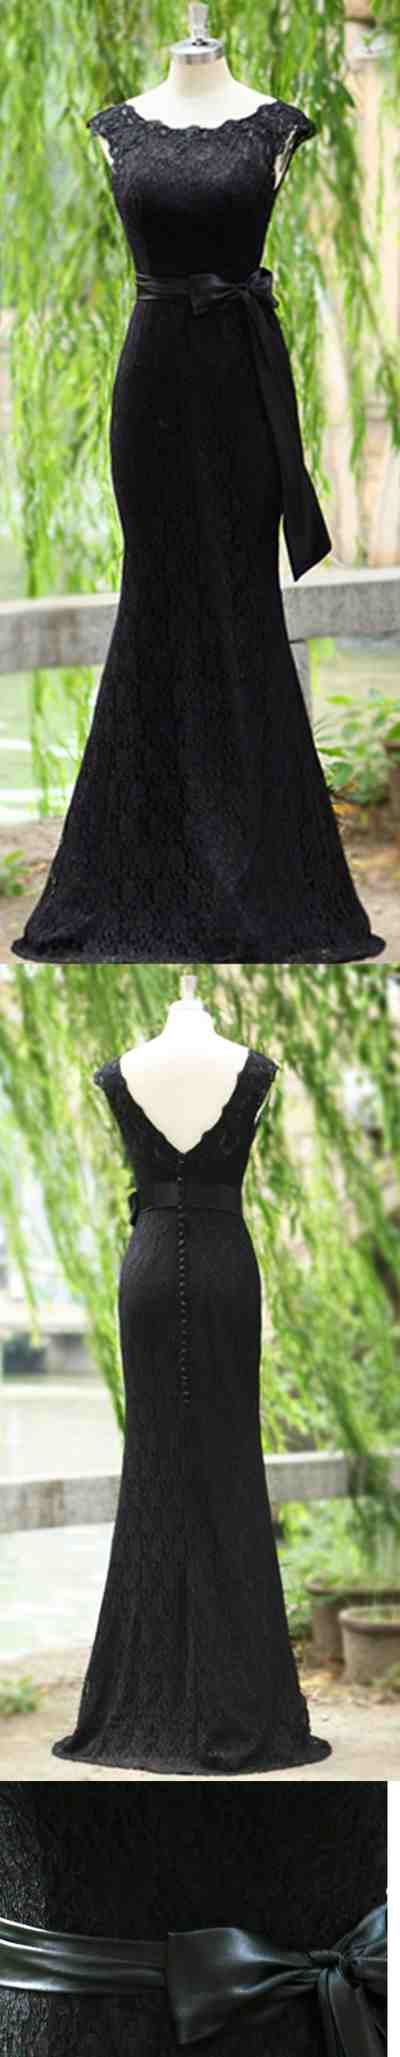 new arrival Sexy ace v-back Prom Dress with belt floor length Prom Dress mermaid Prom Dress